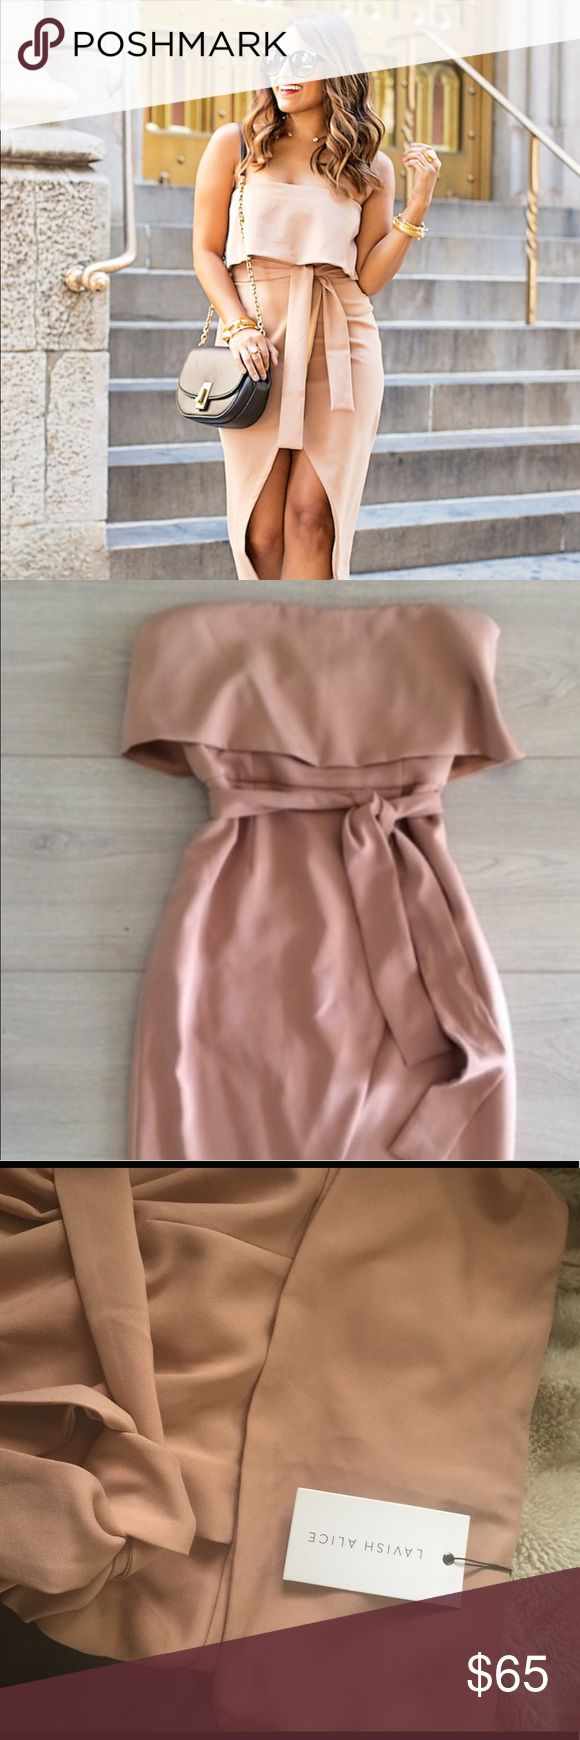 NWT Lavish Alice Camel Bandeau Midi Dress NWT. Lovely lovely camel color bandeau midi dress. I bought this dress for a dinner party but it was a tad bit too small 😐 Hope it will be the perfect size for someone. US 6, UK 10 lavish alice Dresses Midi